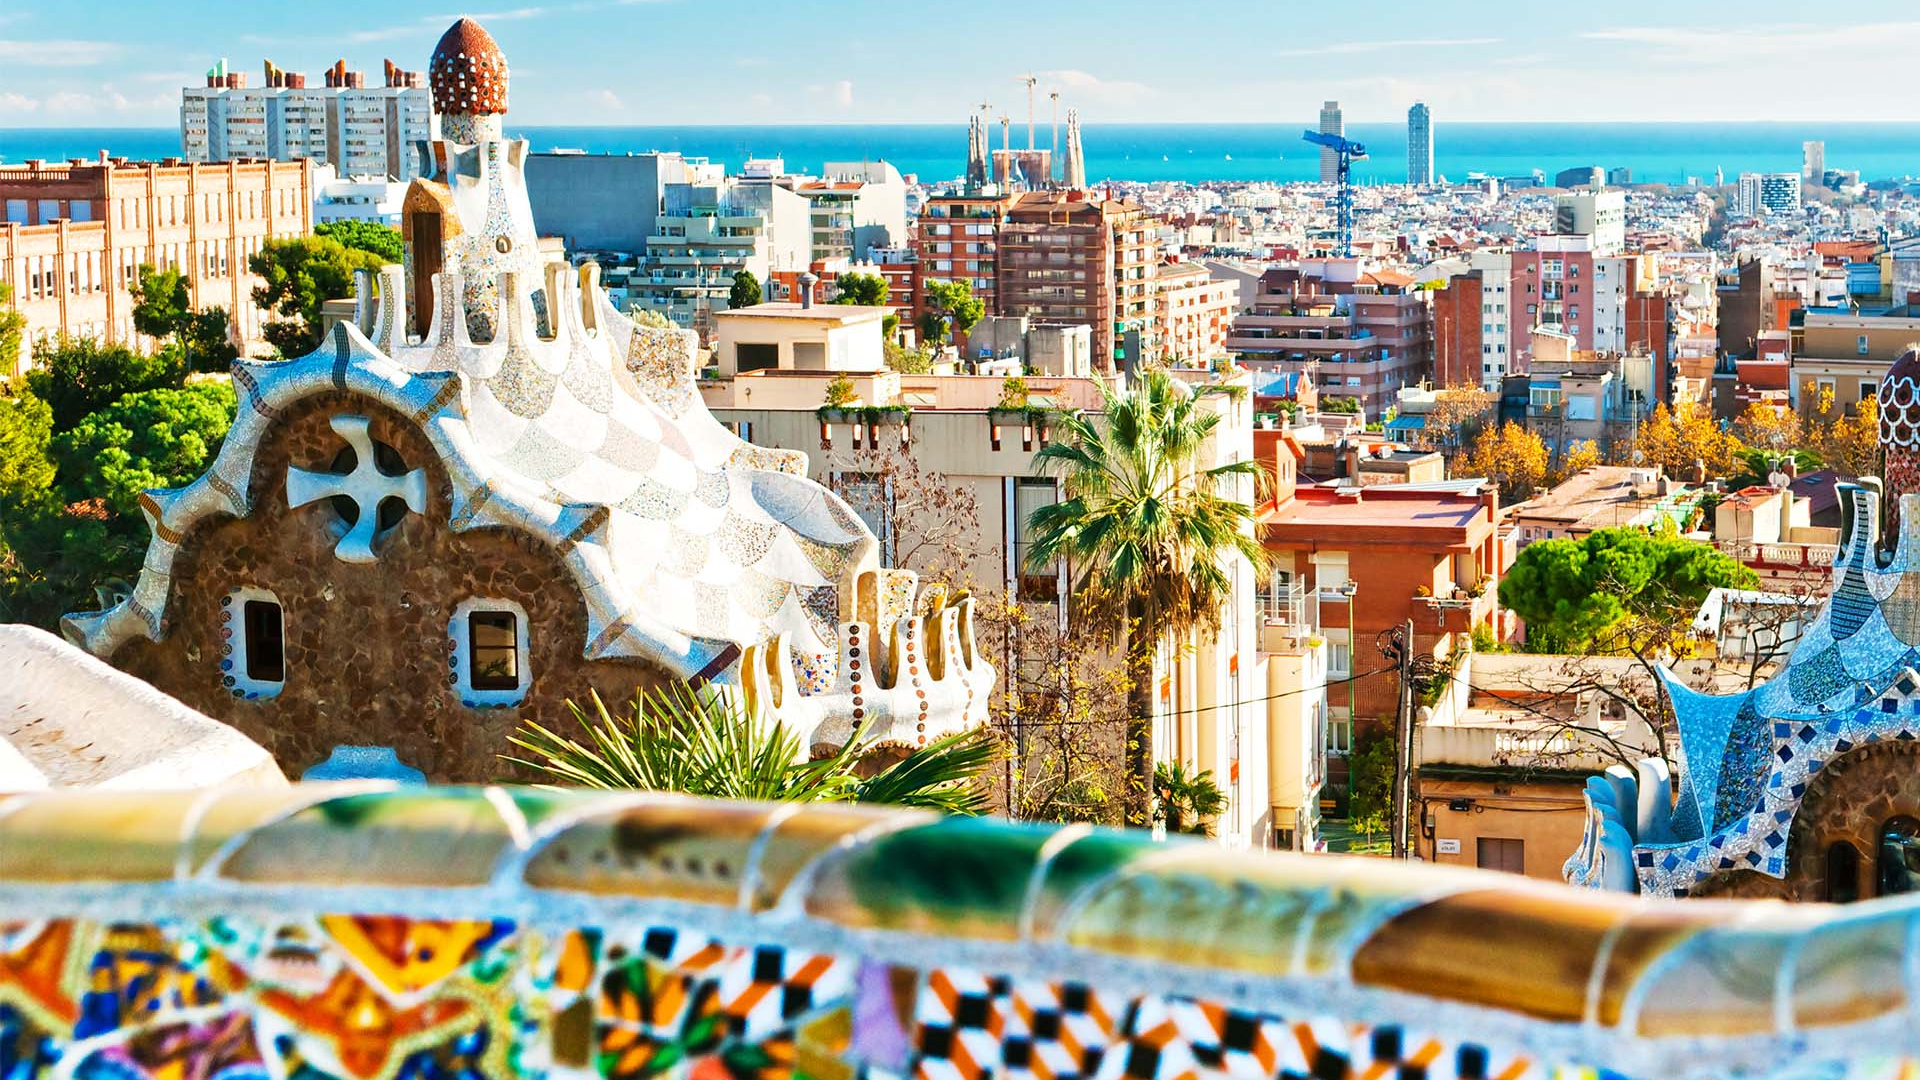 View of Barcelona from top of Parc Guell